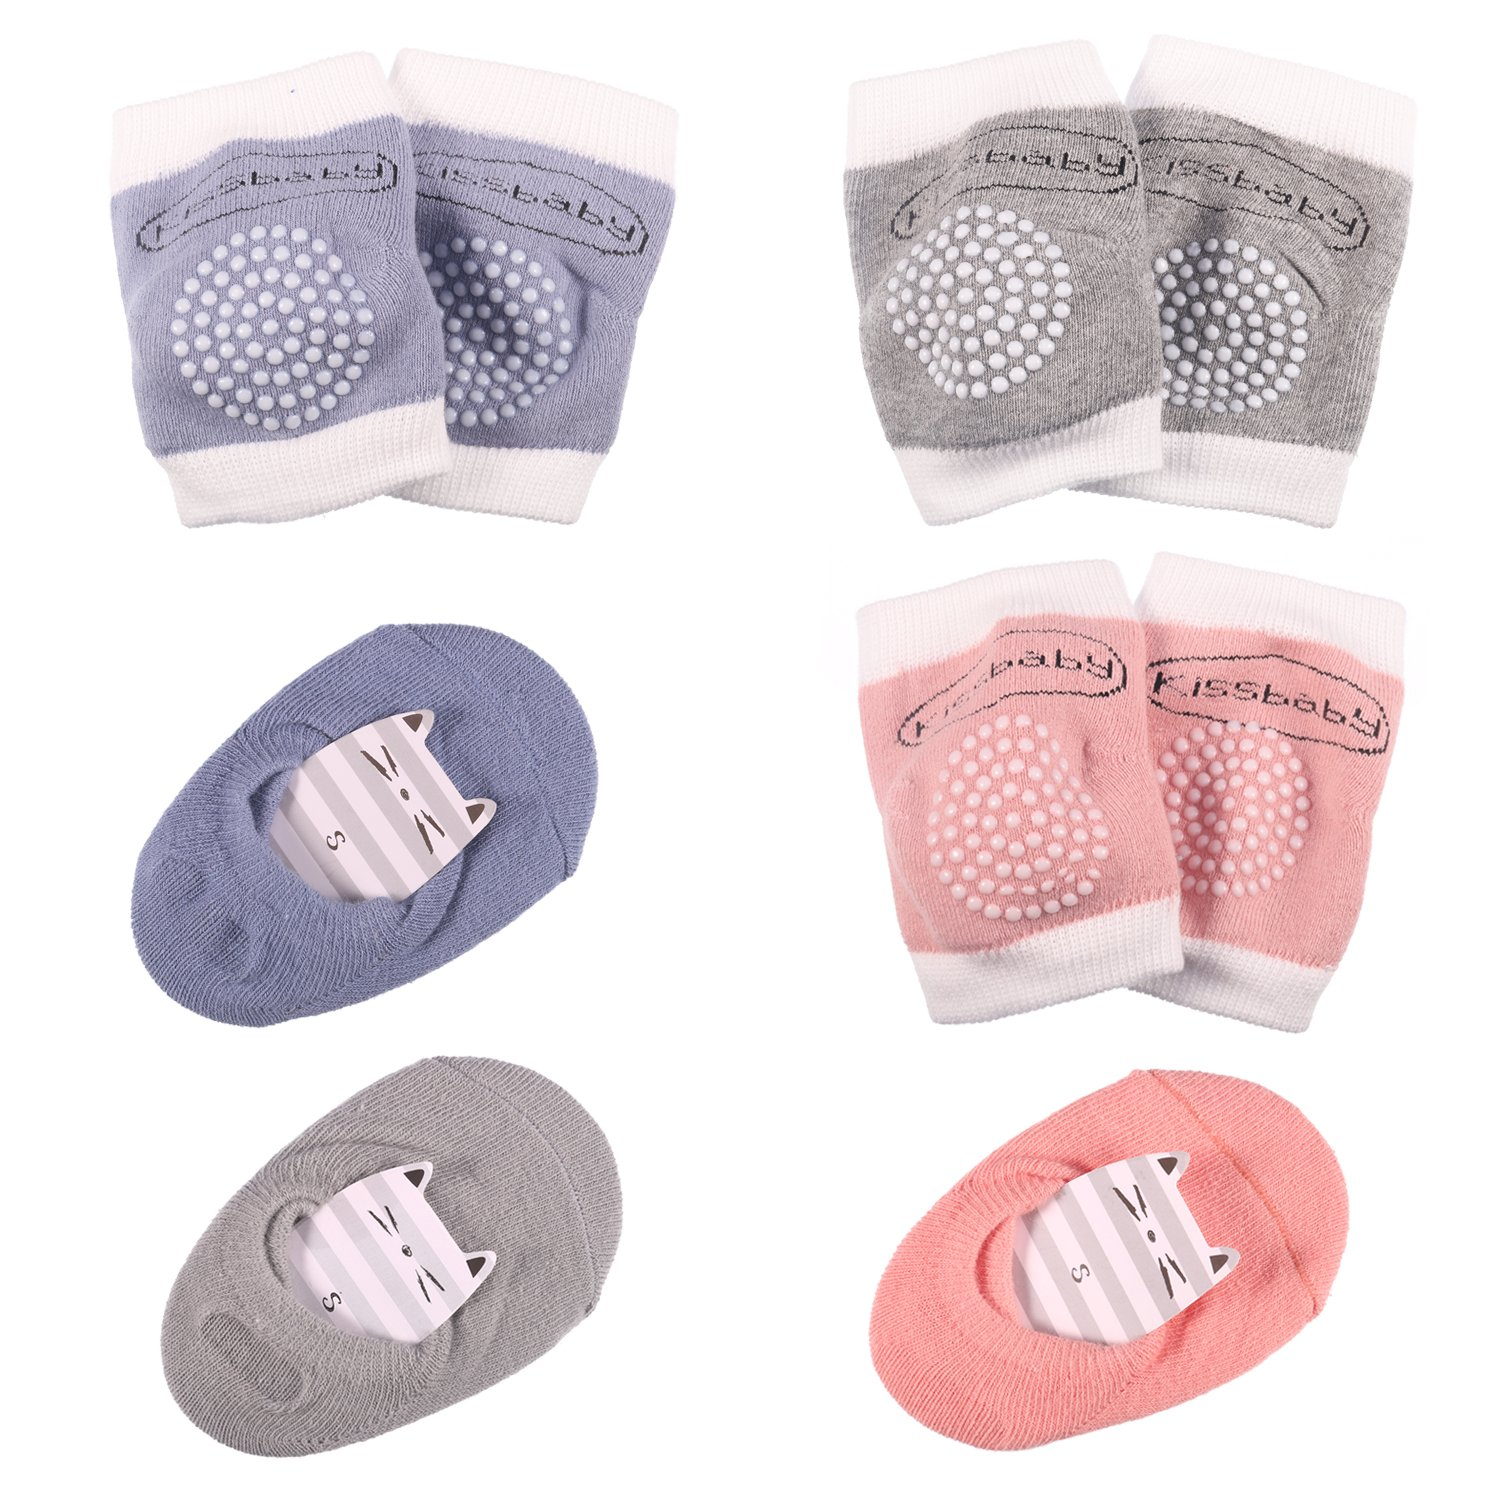 Hautoco Baby Knee Pads for Crawling Anti-Slip 3 Pairs with Baby Socks Unisex Anti-Slip Soft Cotton Breathable 3 Pairs